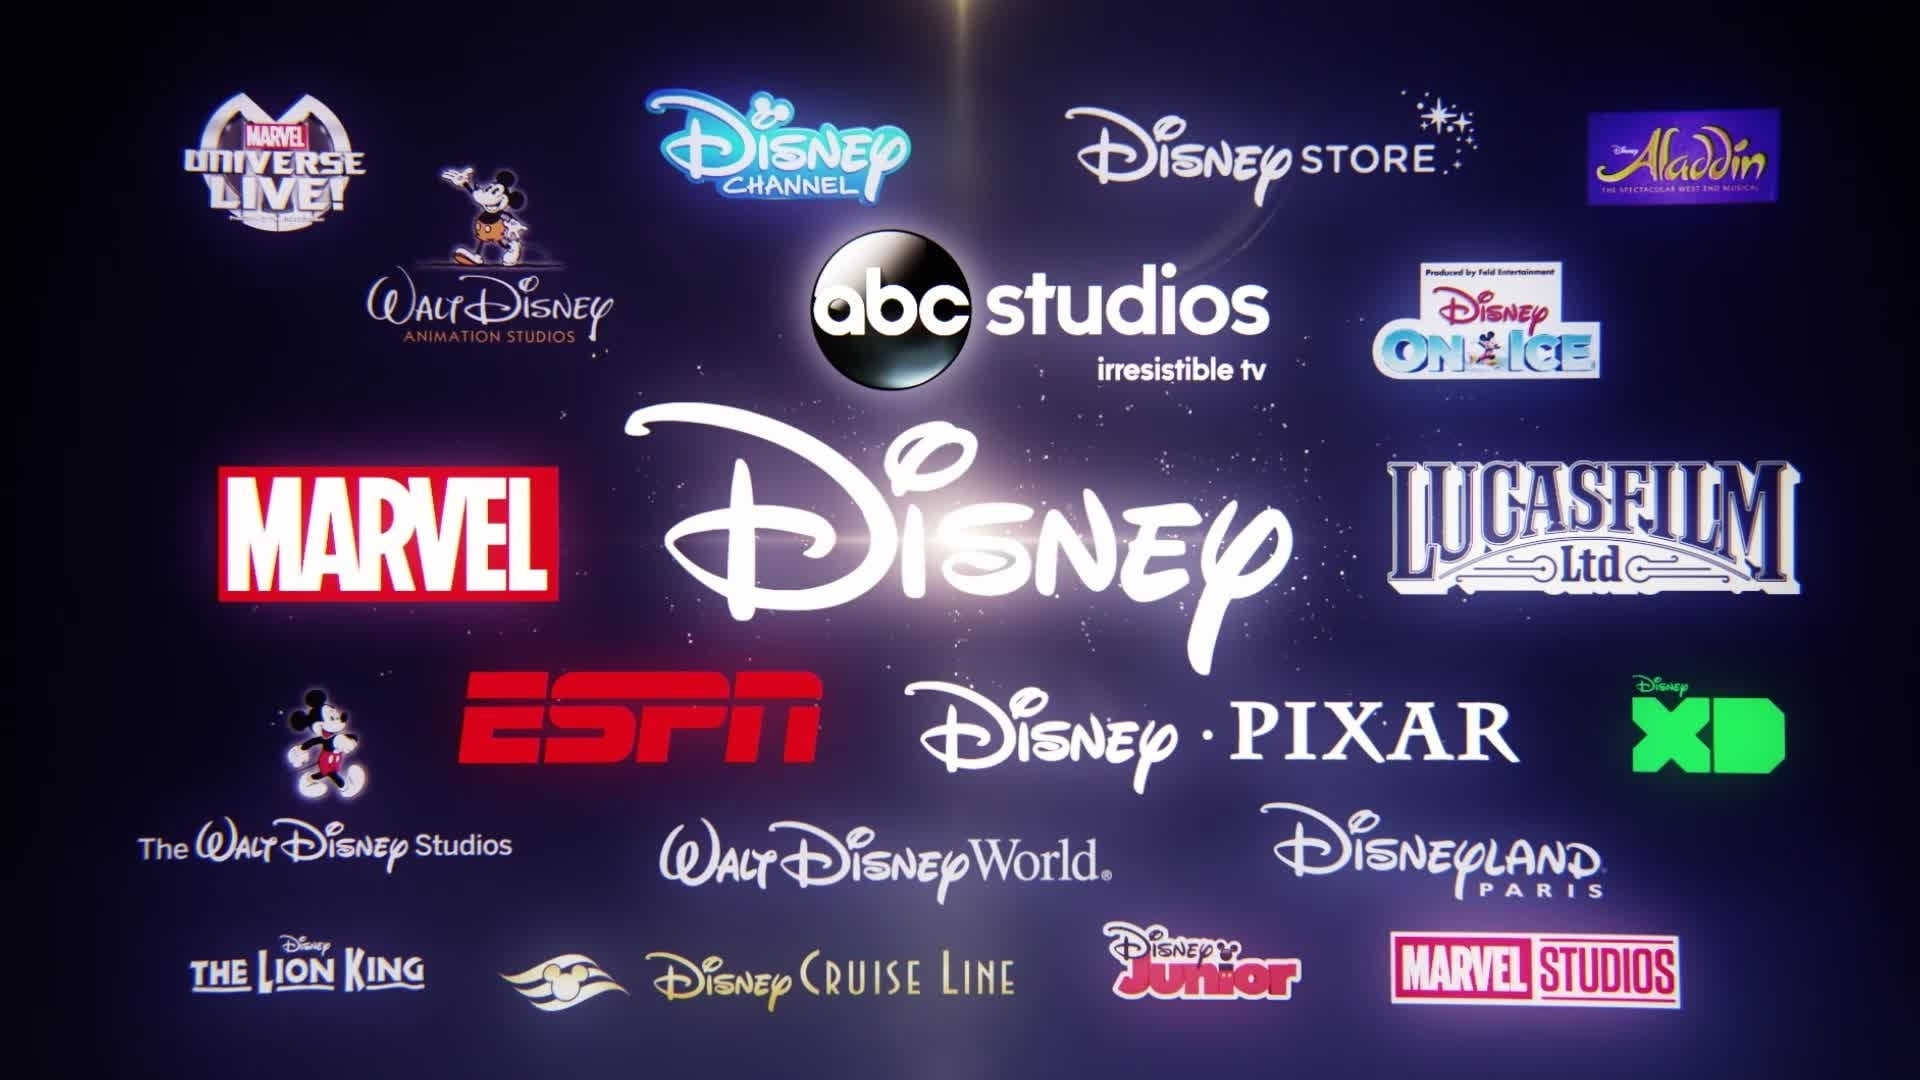 About Us - The Walt Disney Family of Companies Video (ES)